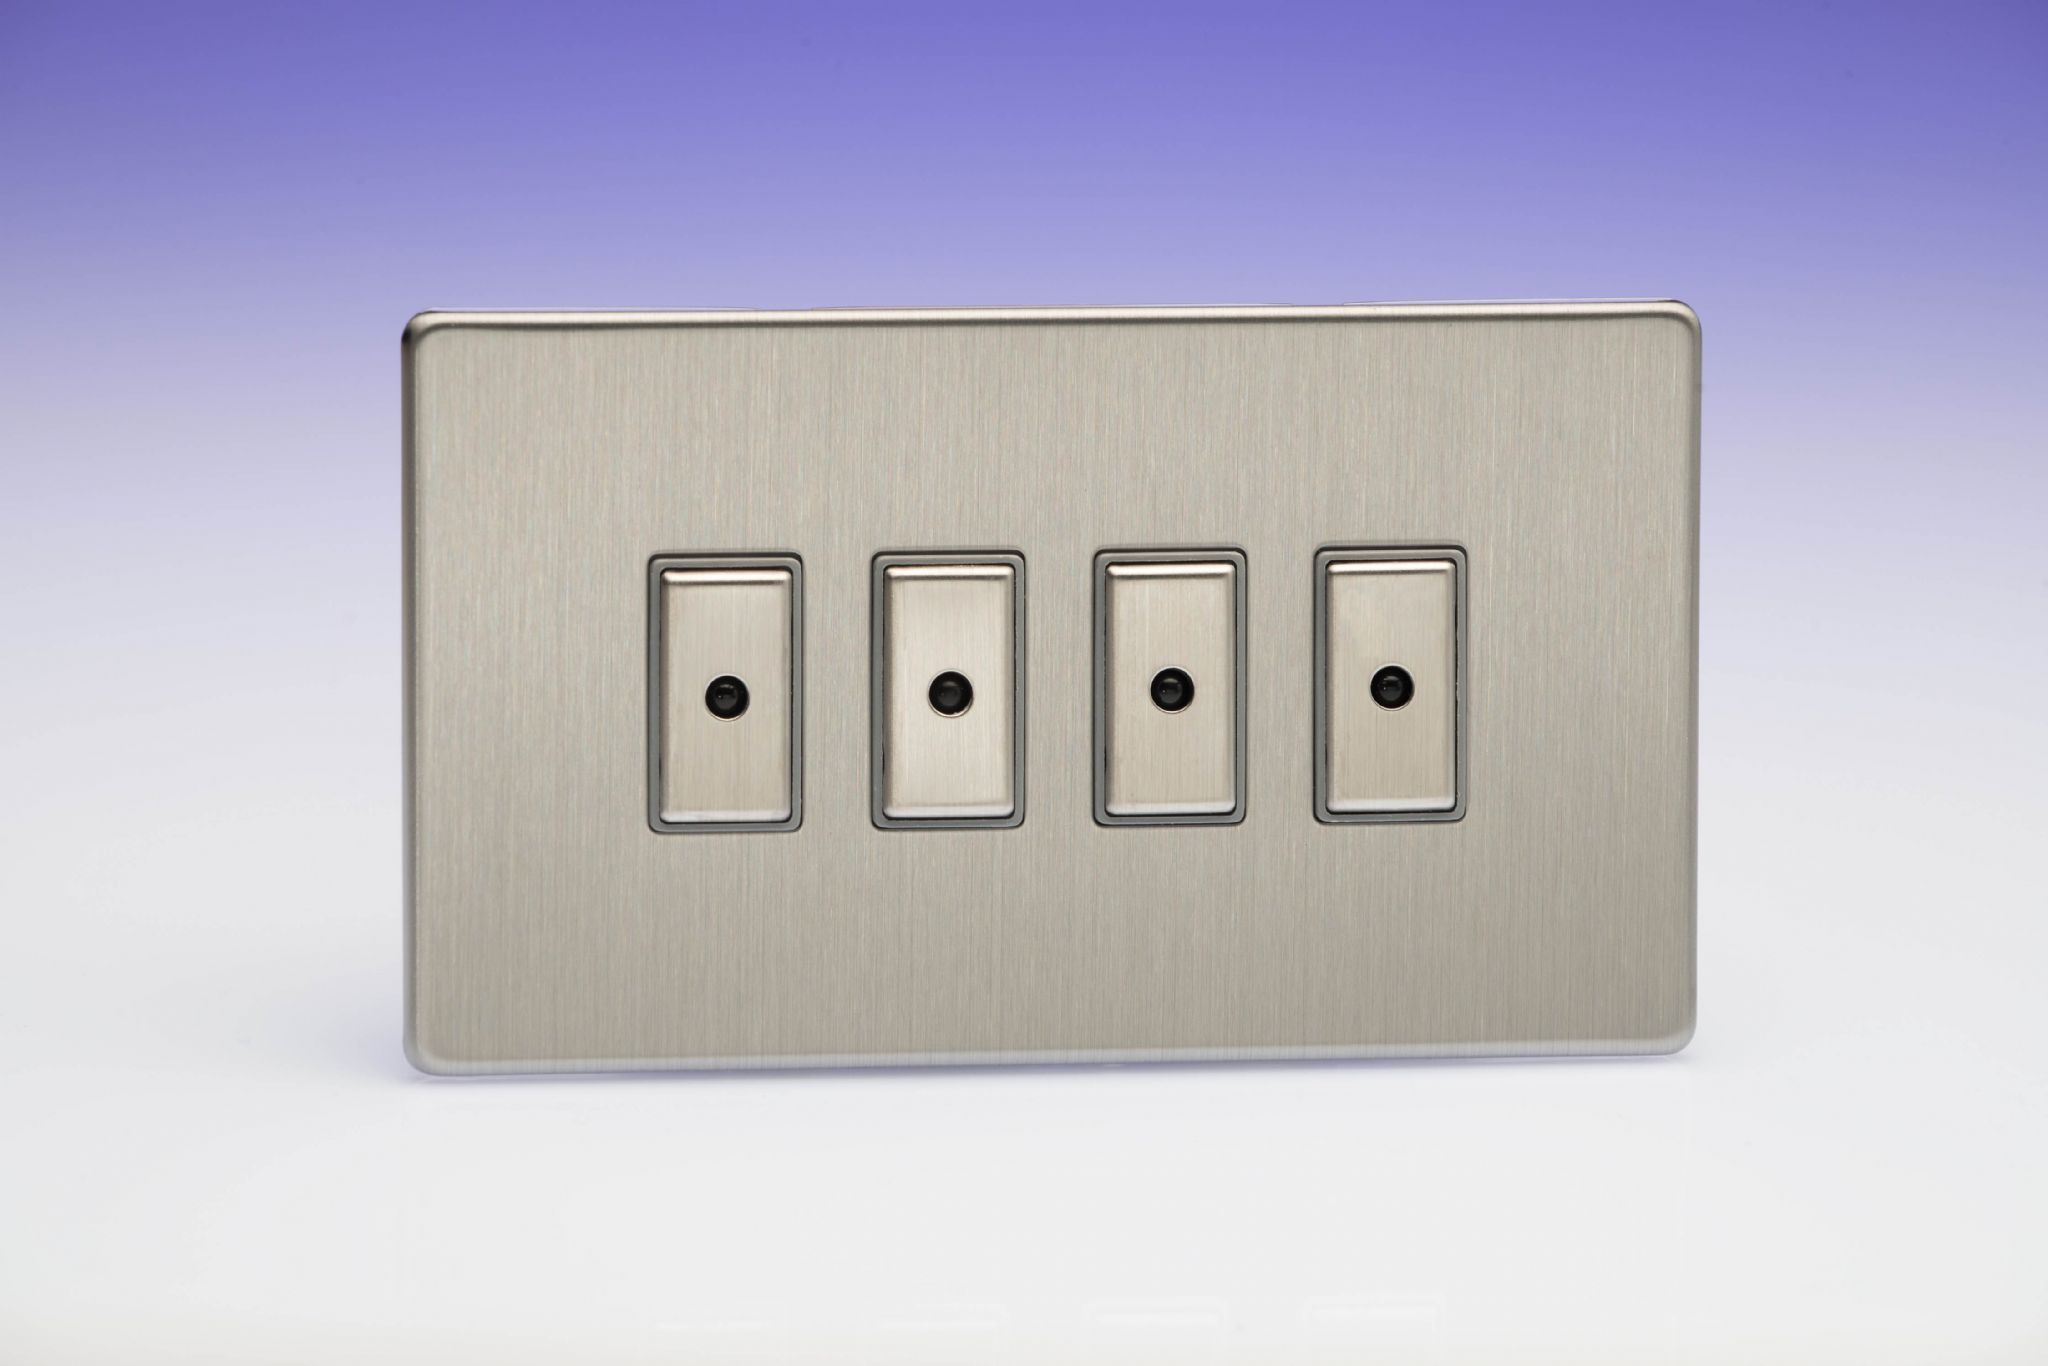 Varilight Eclique 2 Brushed Steel 4 Gang 1 Way Remote Control Touch Switch Controls Master Led Dimmer X 0 100w